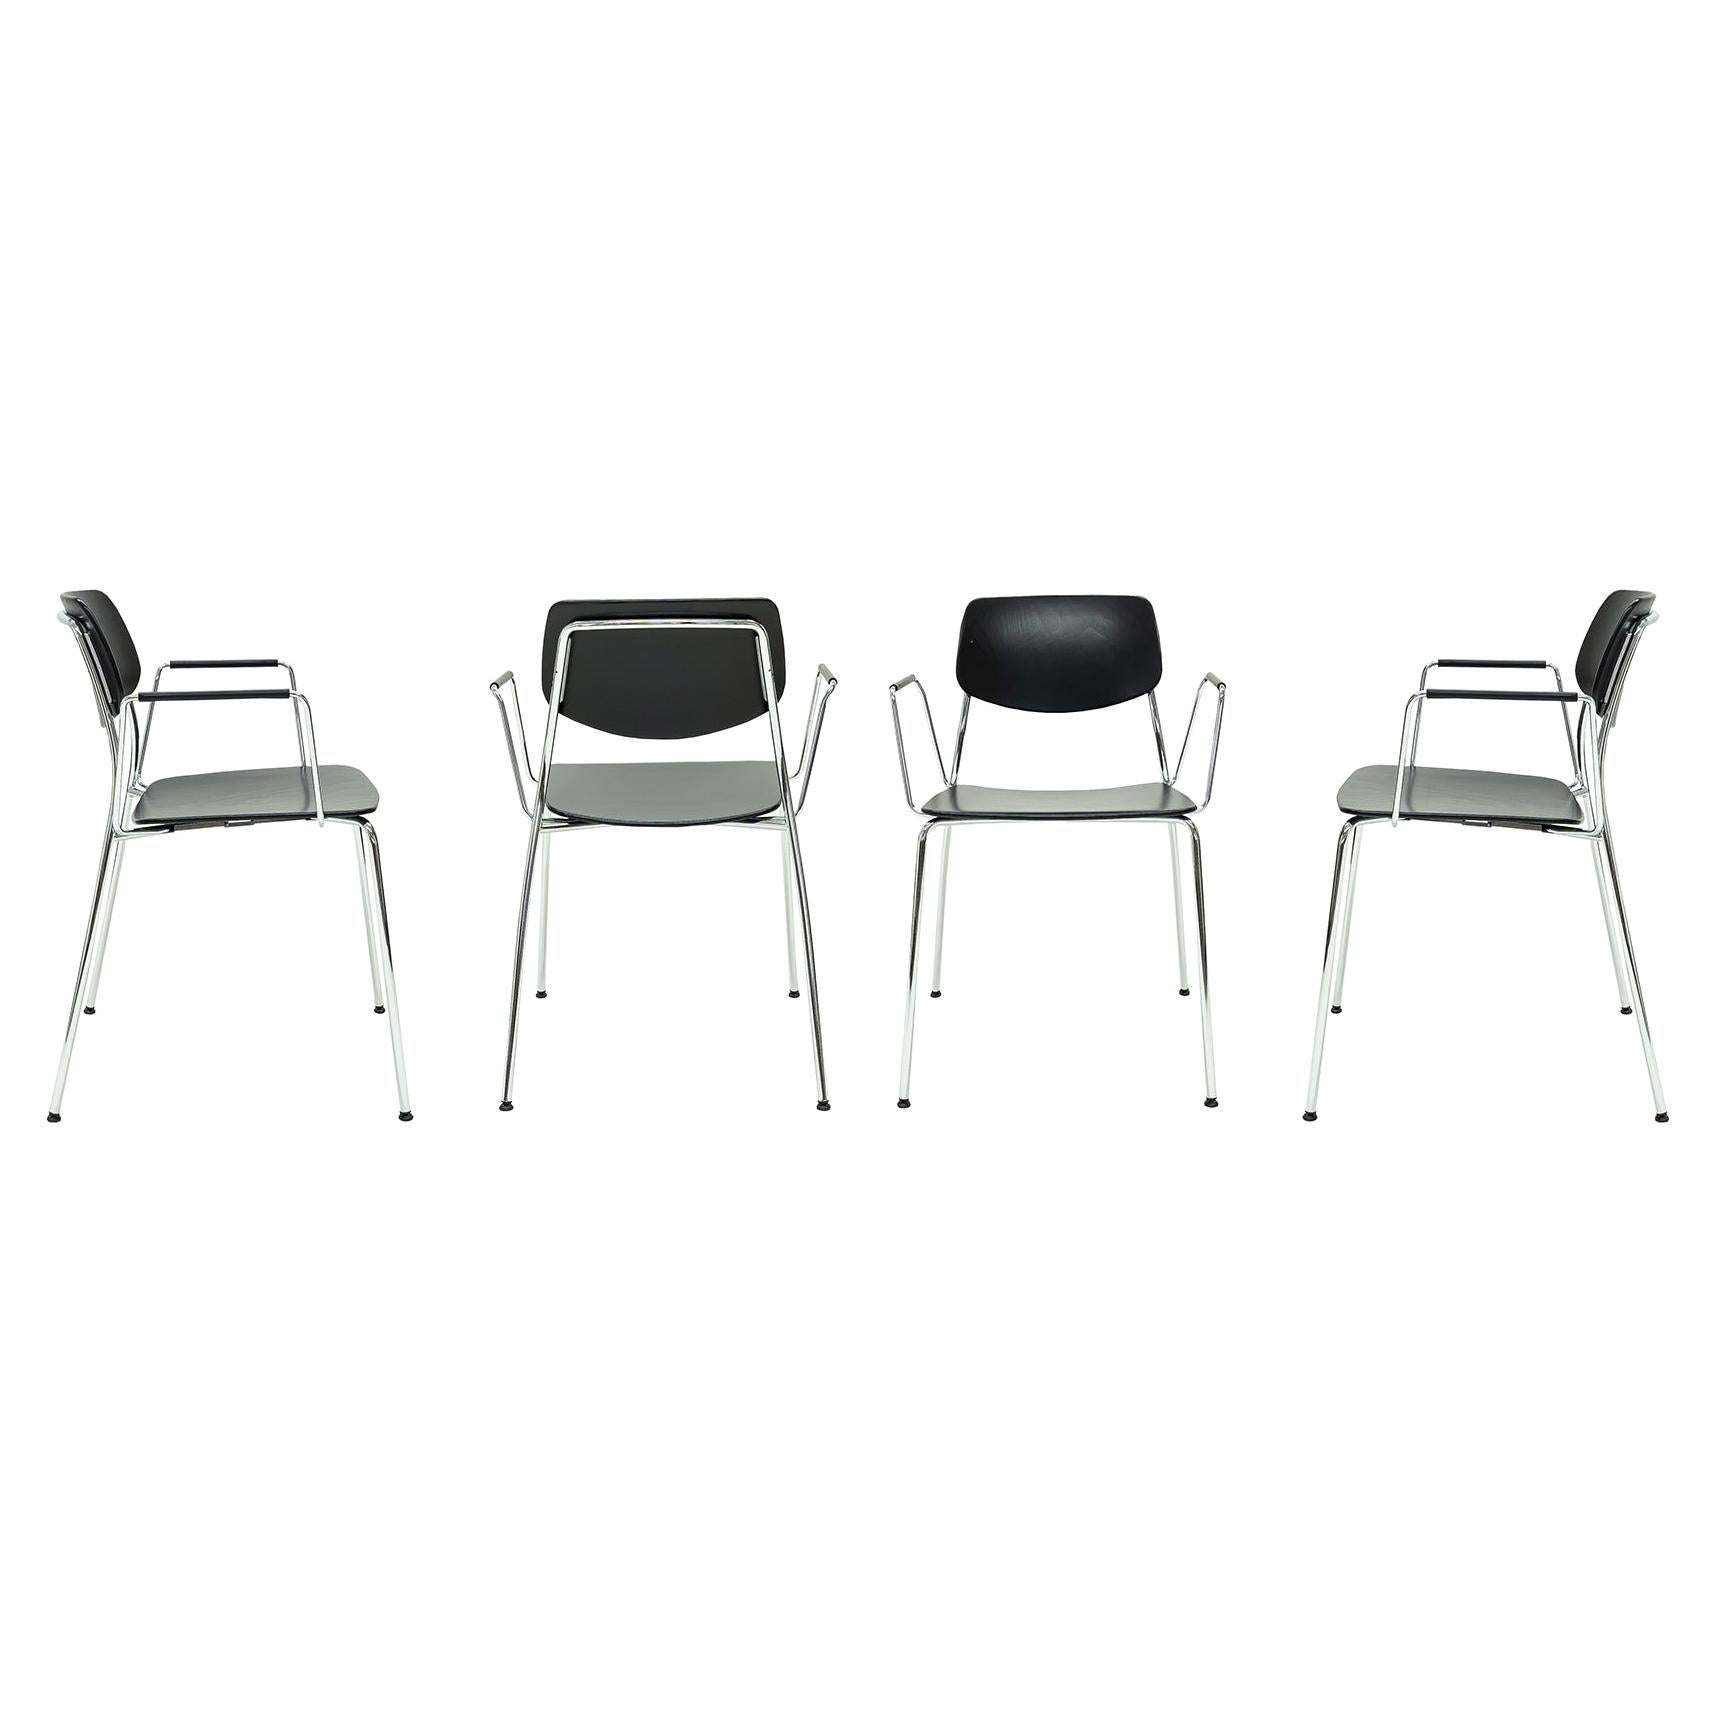 Dietiker Felber C14 Metal Dining Chair with Arms, Modular Design, Set of 4